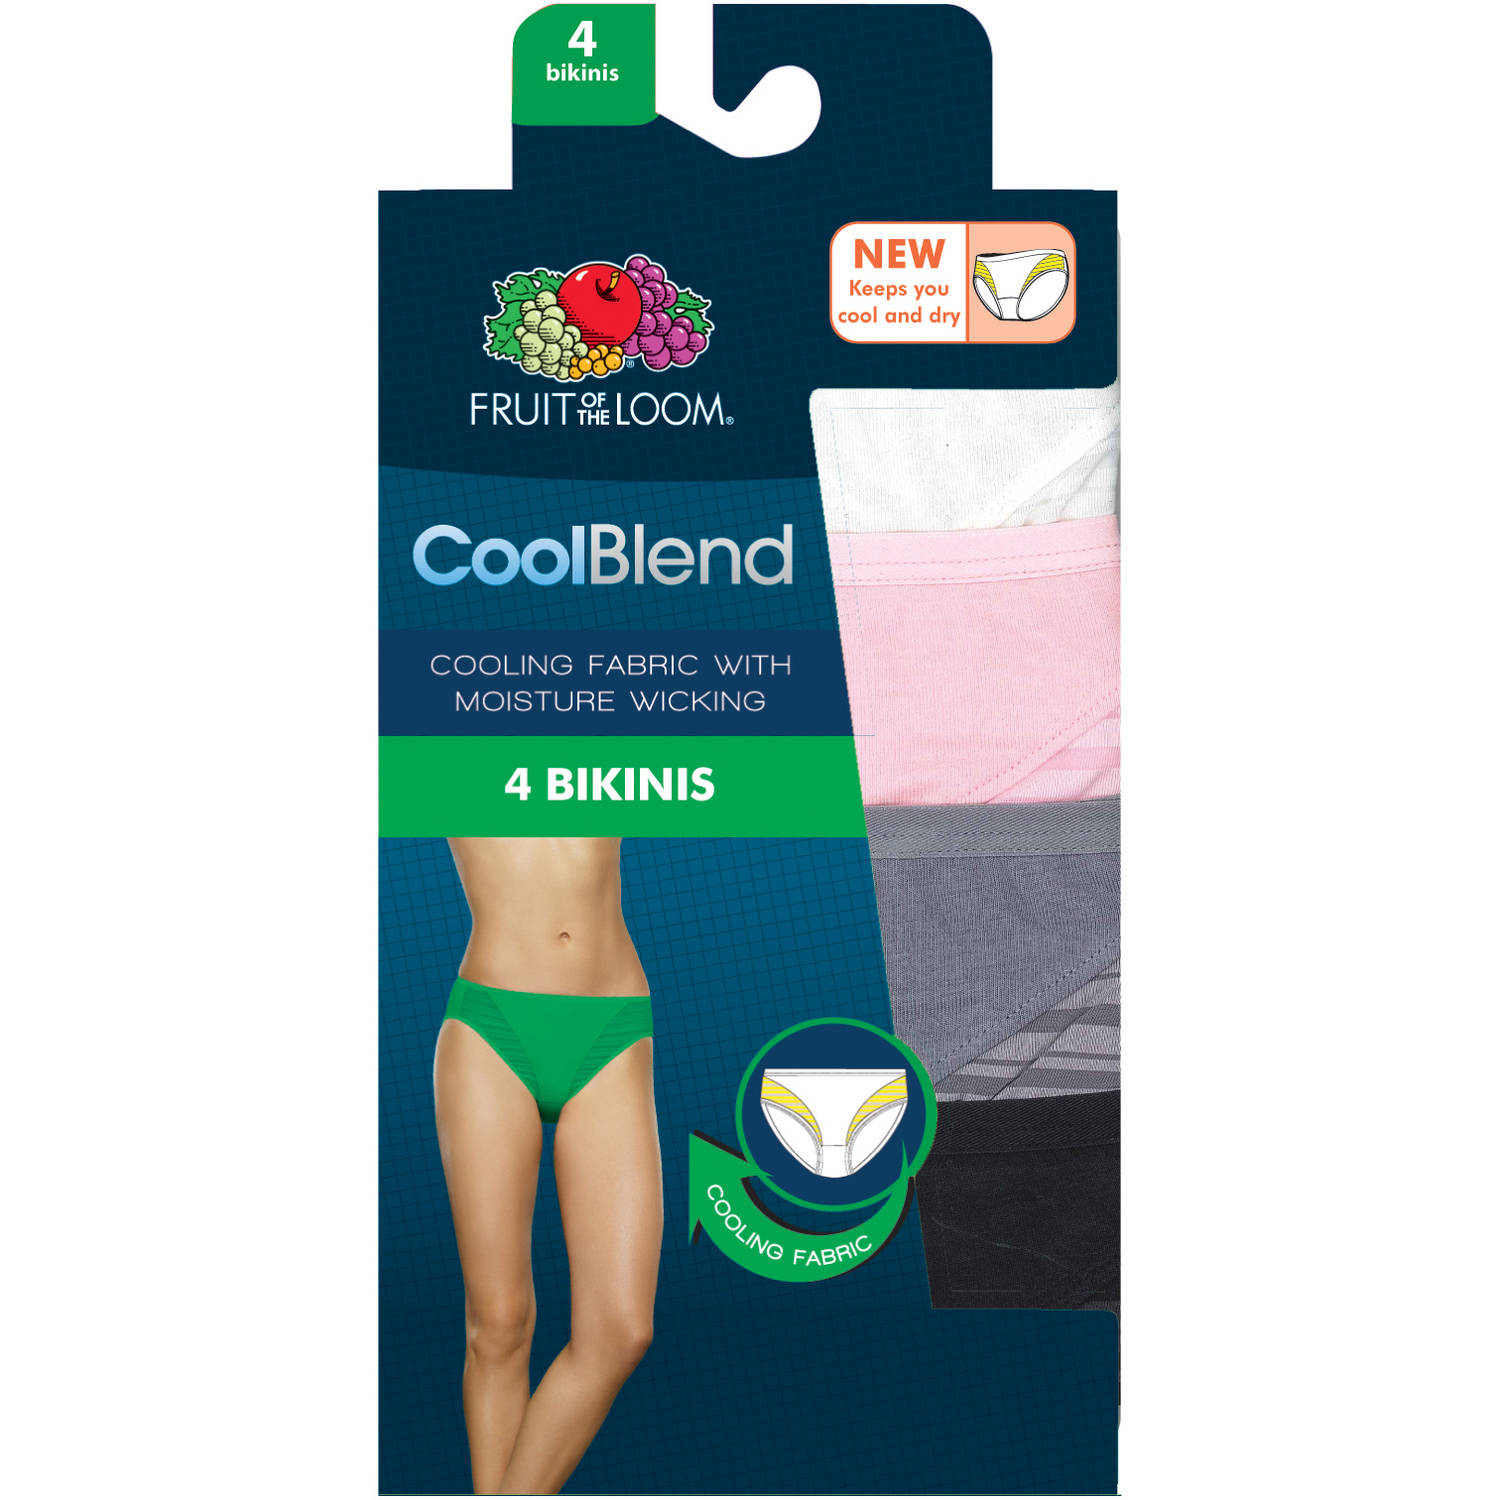 Fruit of the Loom Ladies' CoolBlend Bikinis, 4-pack Panties